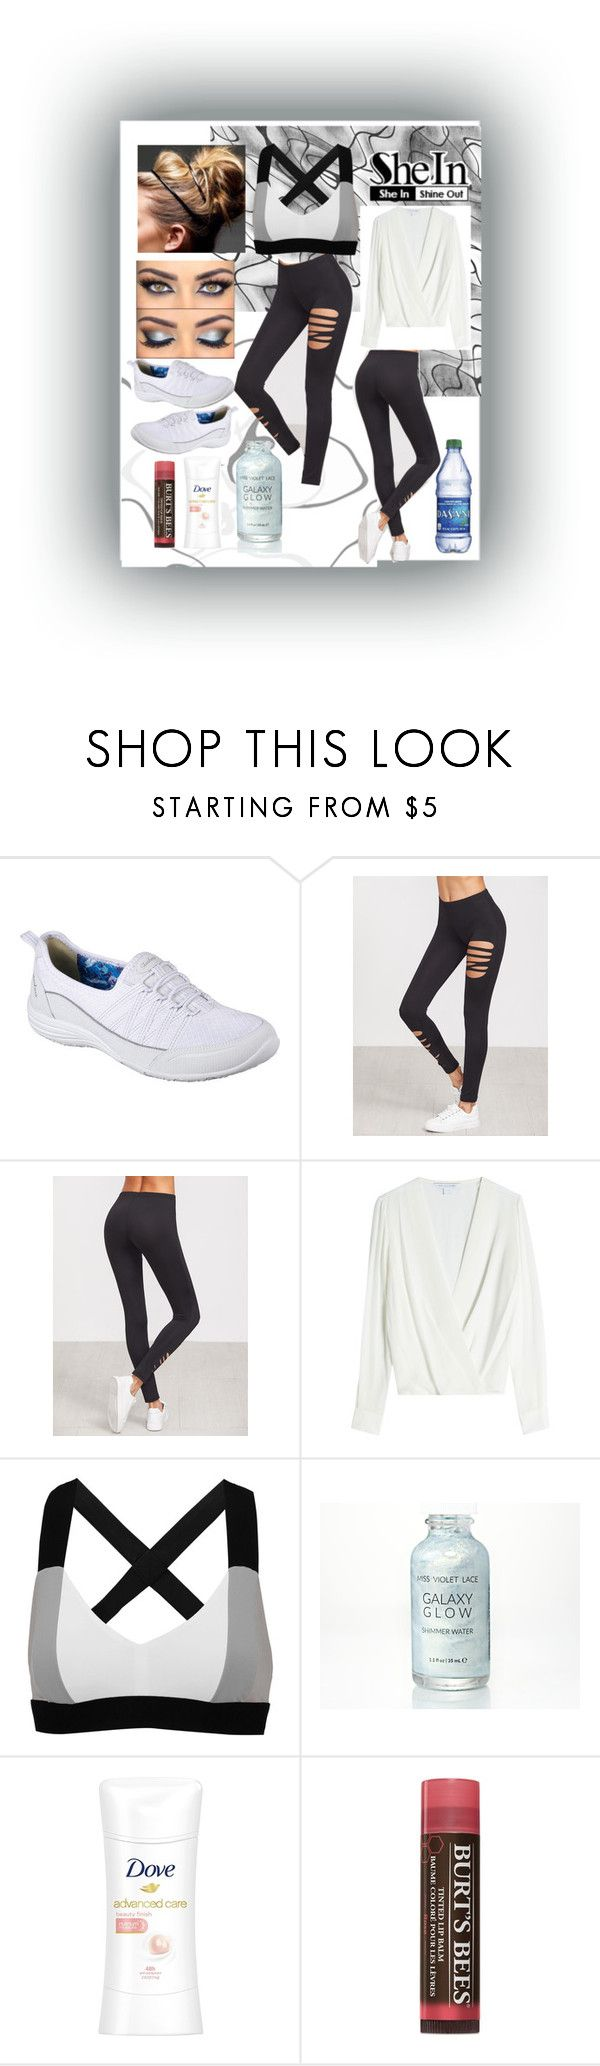 """""""Work It!"""" by snowflakeunique ❤ liked on Polyvore featuring Skechers, Diane Von Furstenberg, No Ka'Oi, Burt's Bees, Sheinside, contestentry and shein"""